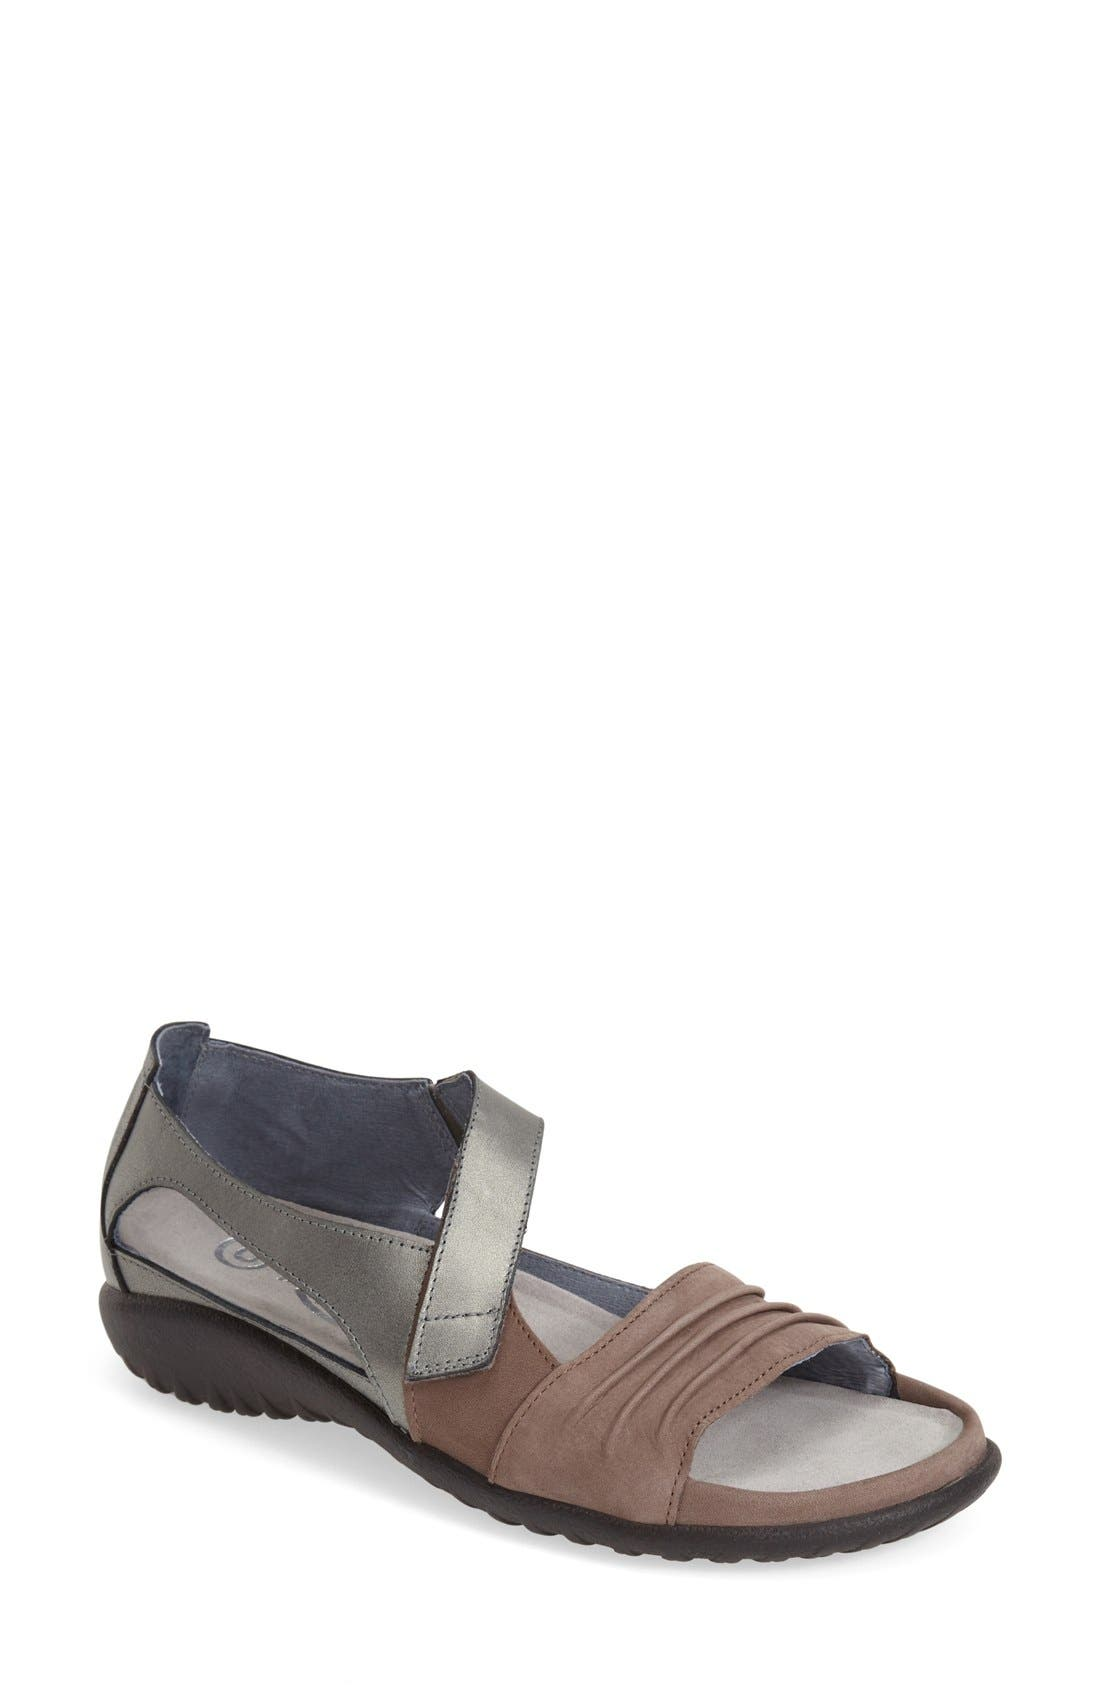 Brand New Naot Norel Womens Comfort Cushioned Orthotic Friendly Leather Sandals